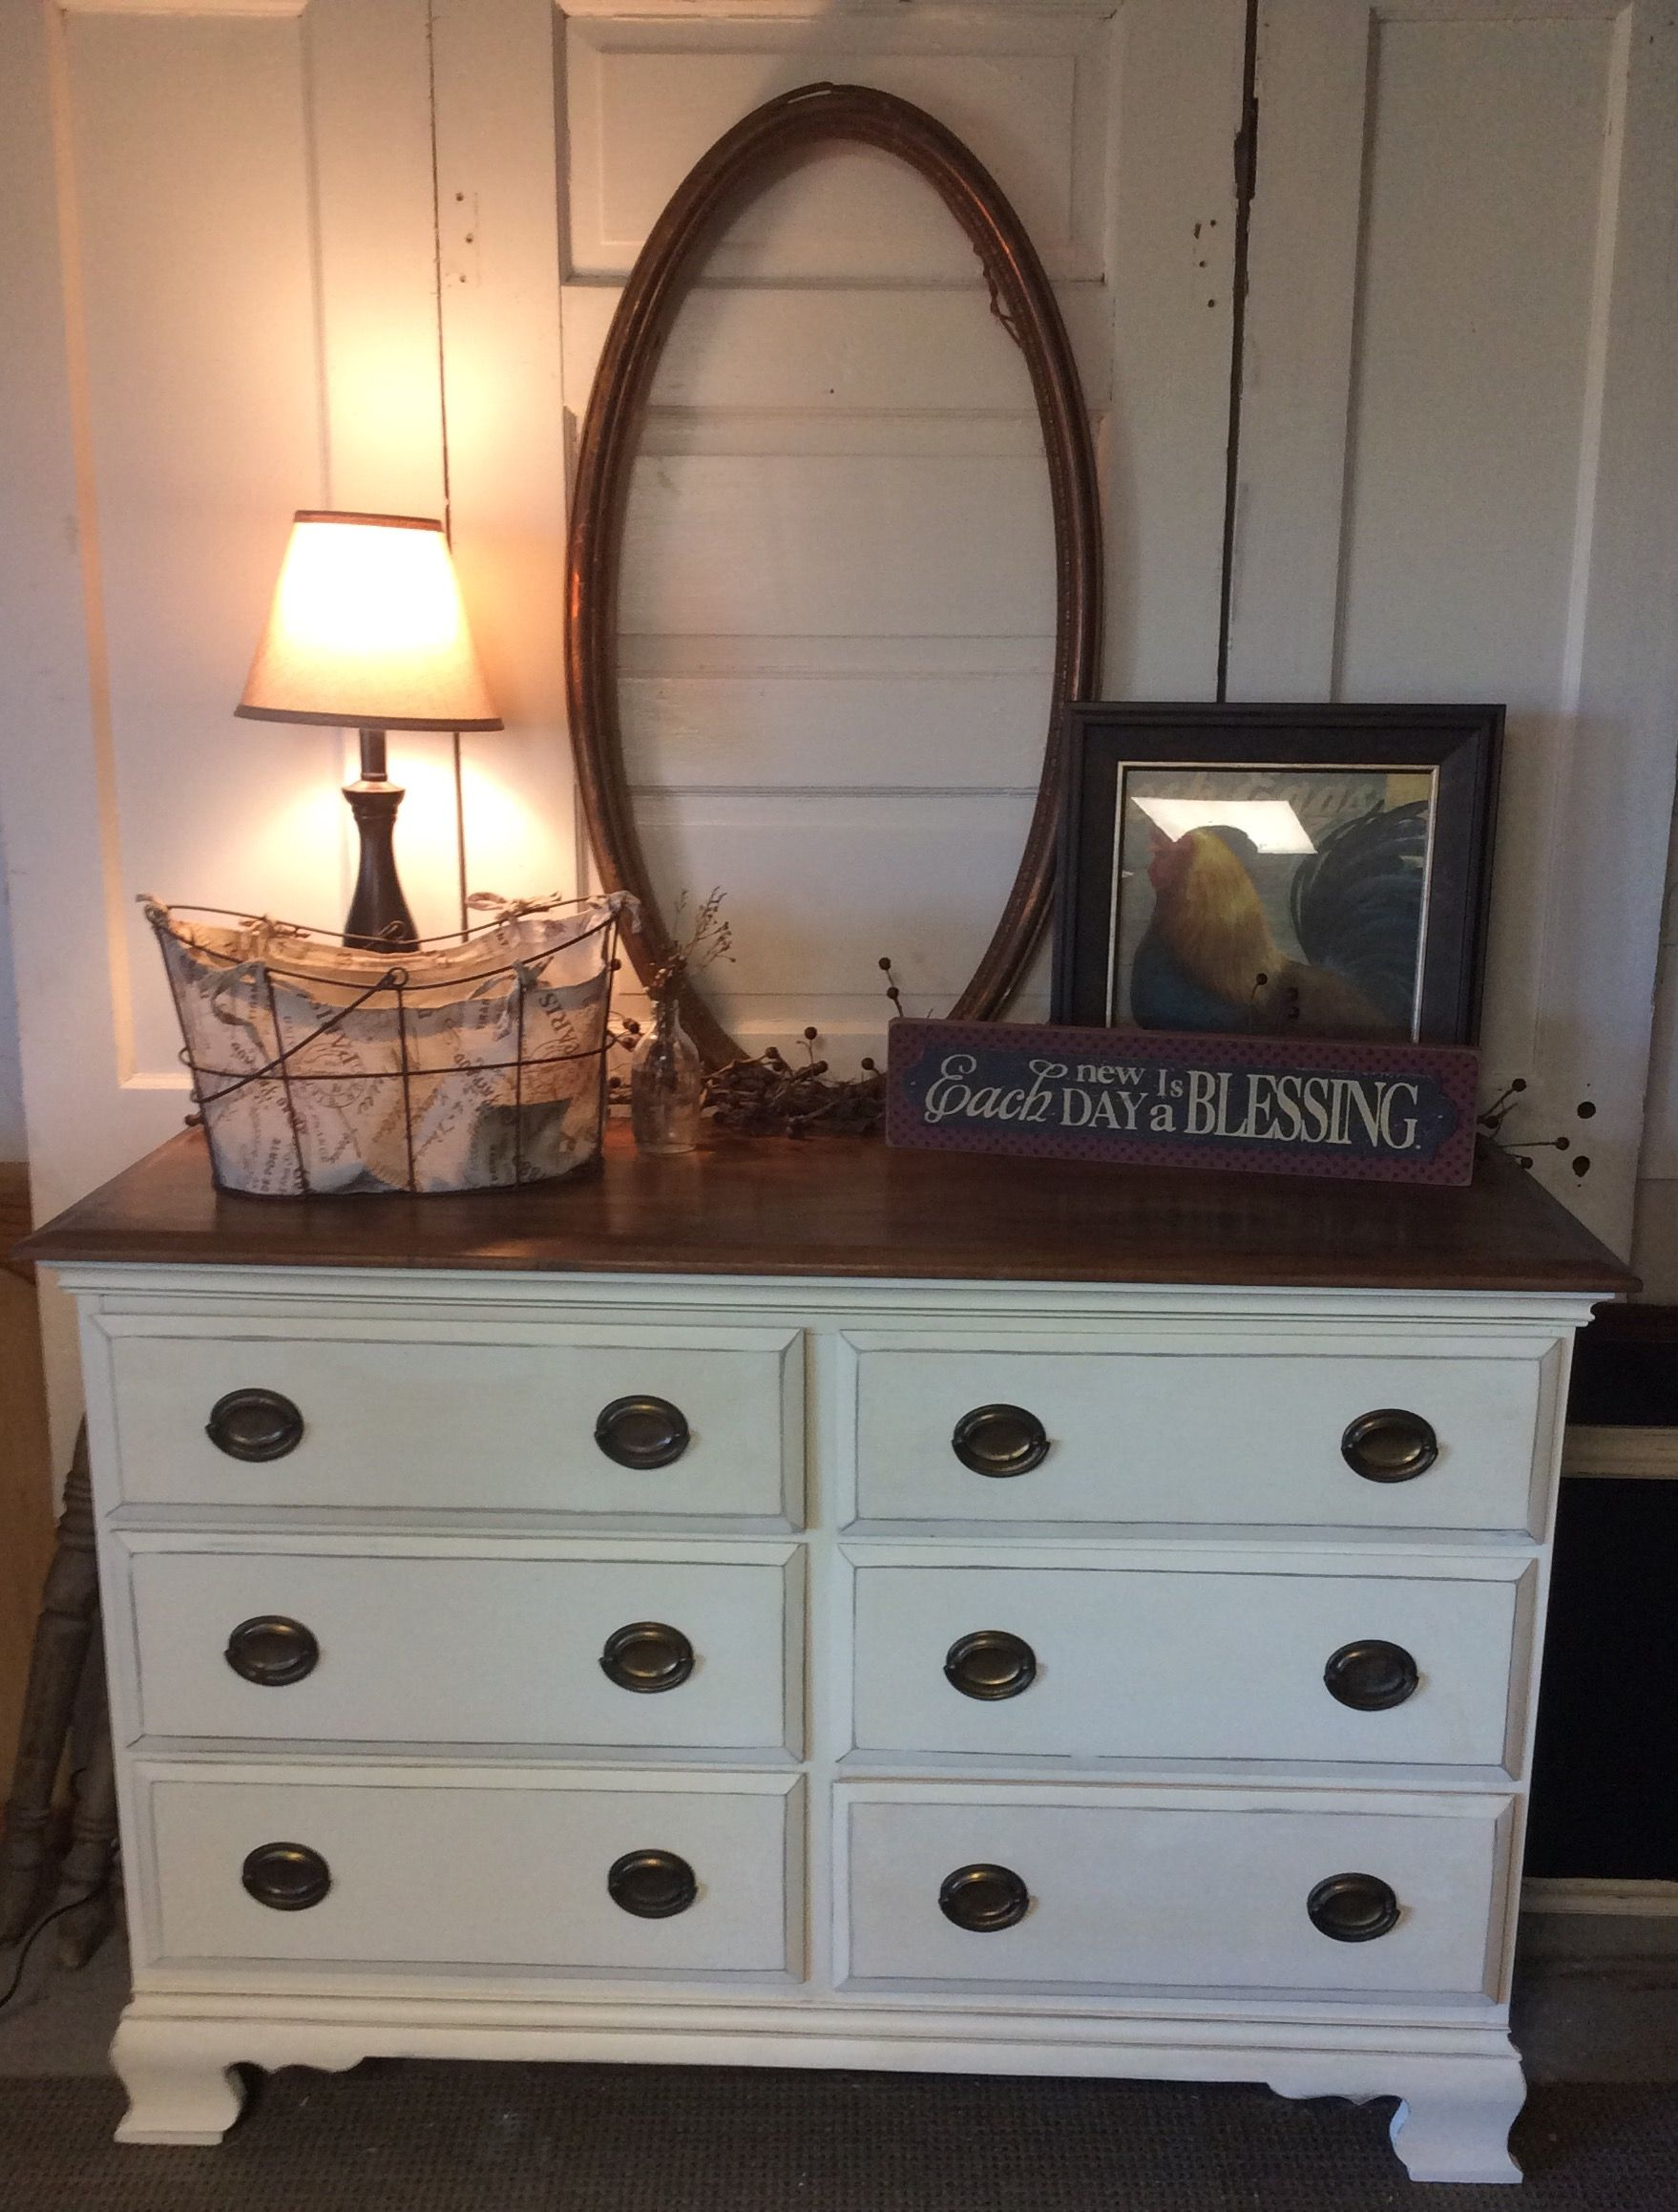 Beautiful Antique Dresser Painted In Chiffon Cream Chalk Paint By Nathan Bridges Neutral Decor Home Decor Woodworking Projects